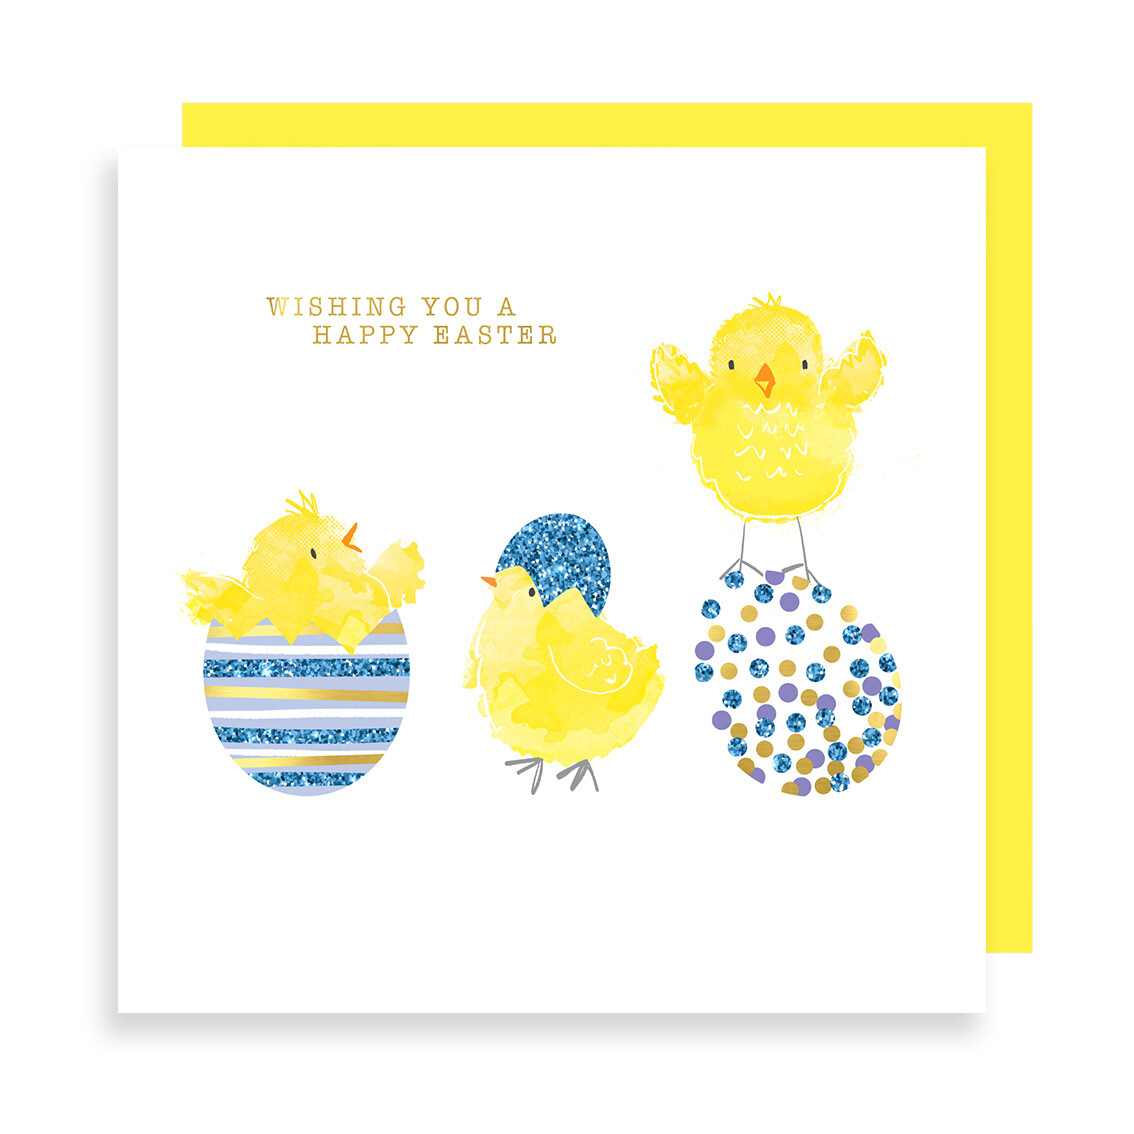 "CARTE DE VŒUX ""WISHING YOU A HAPPY EASTER"""